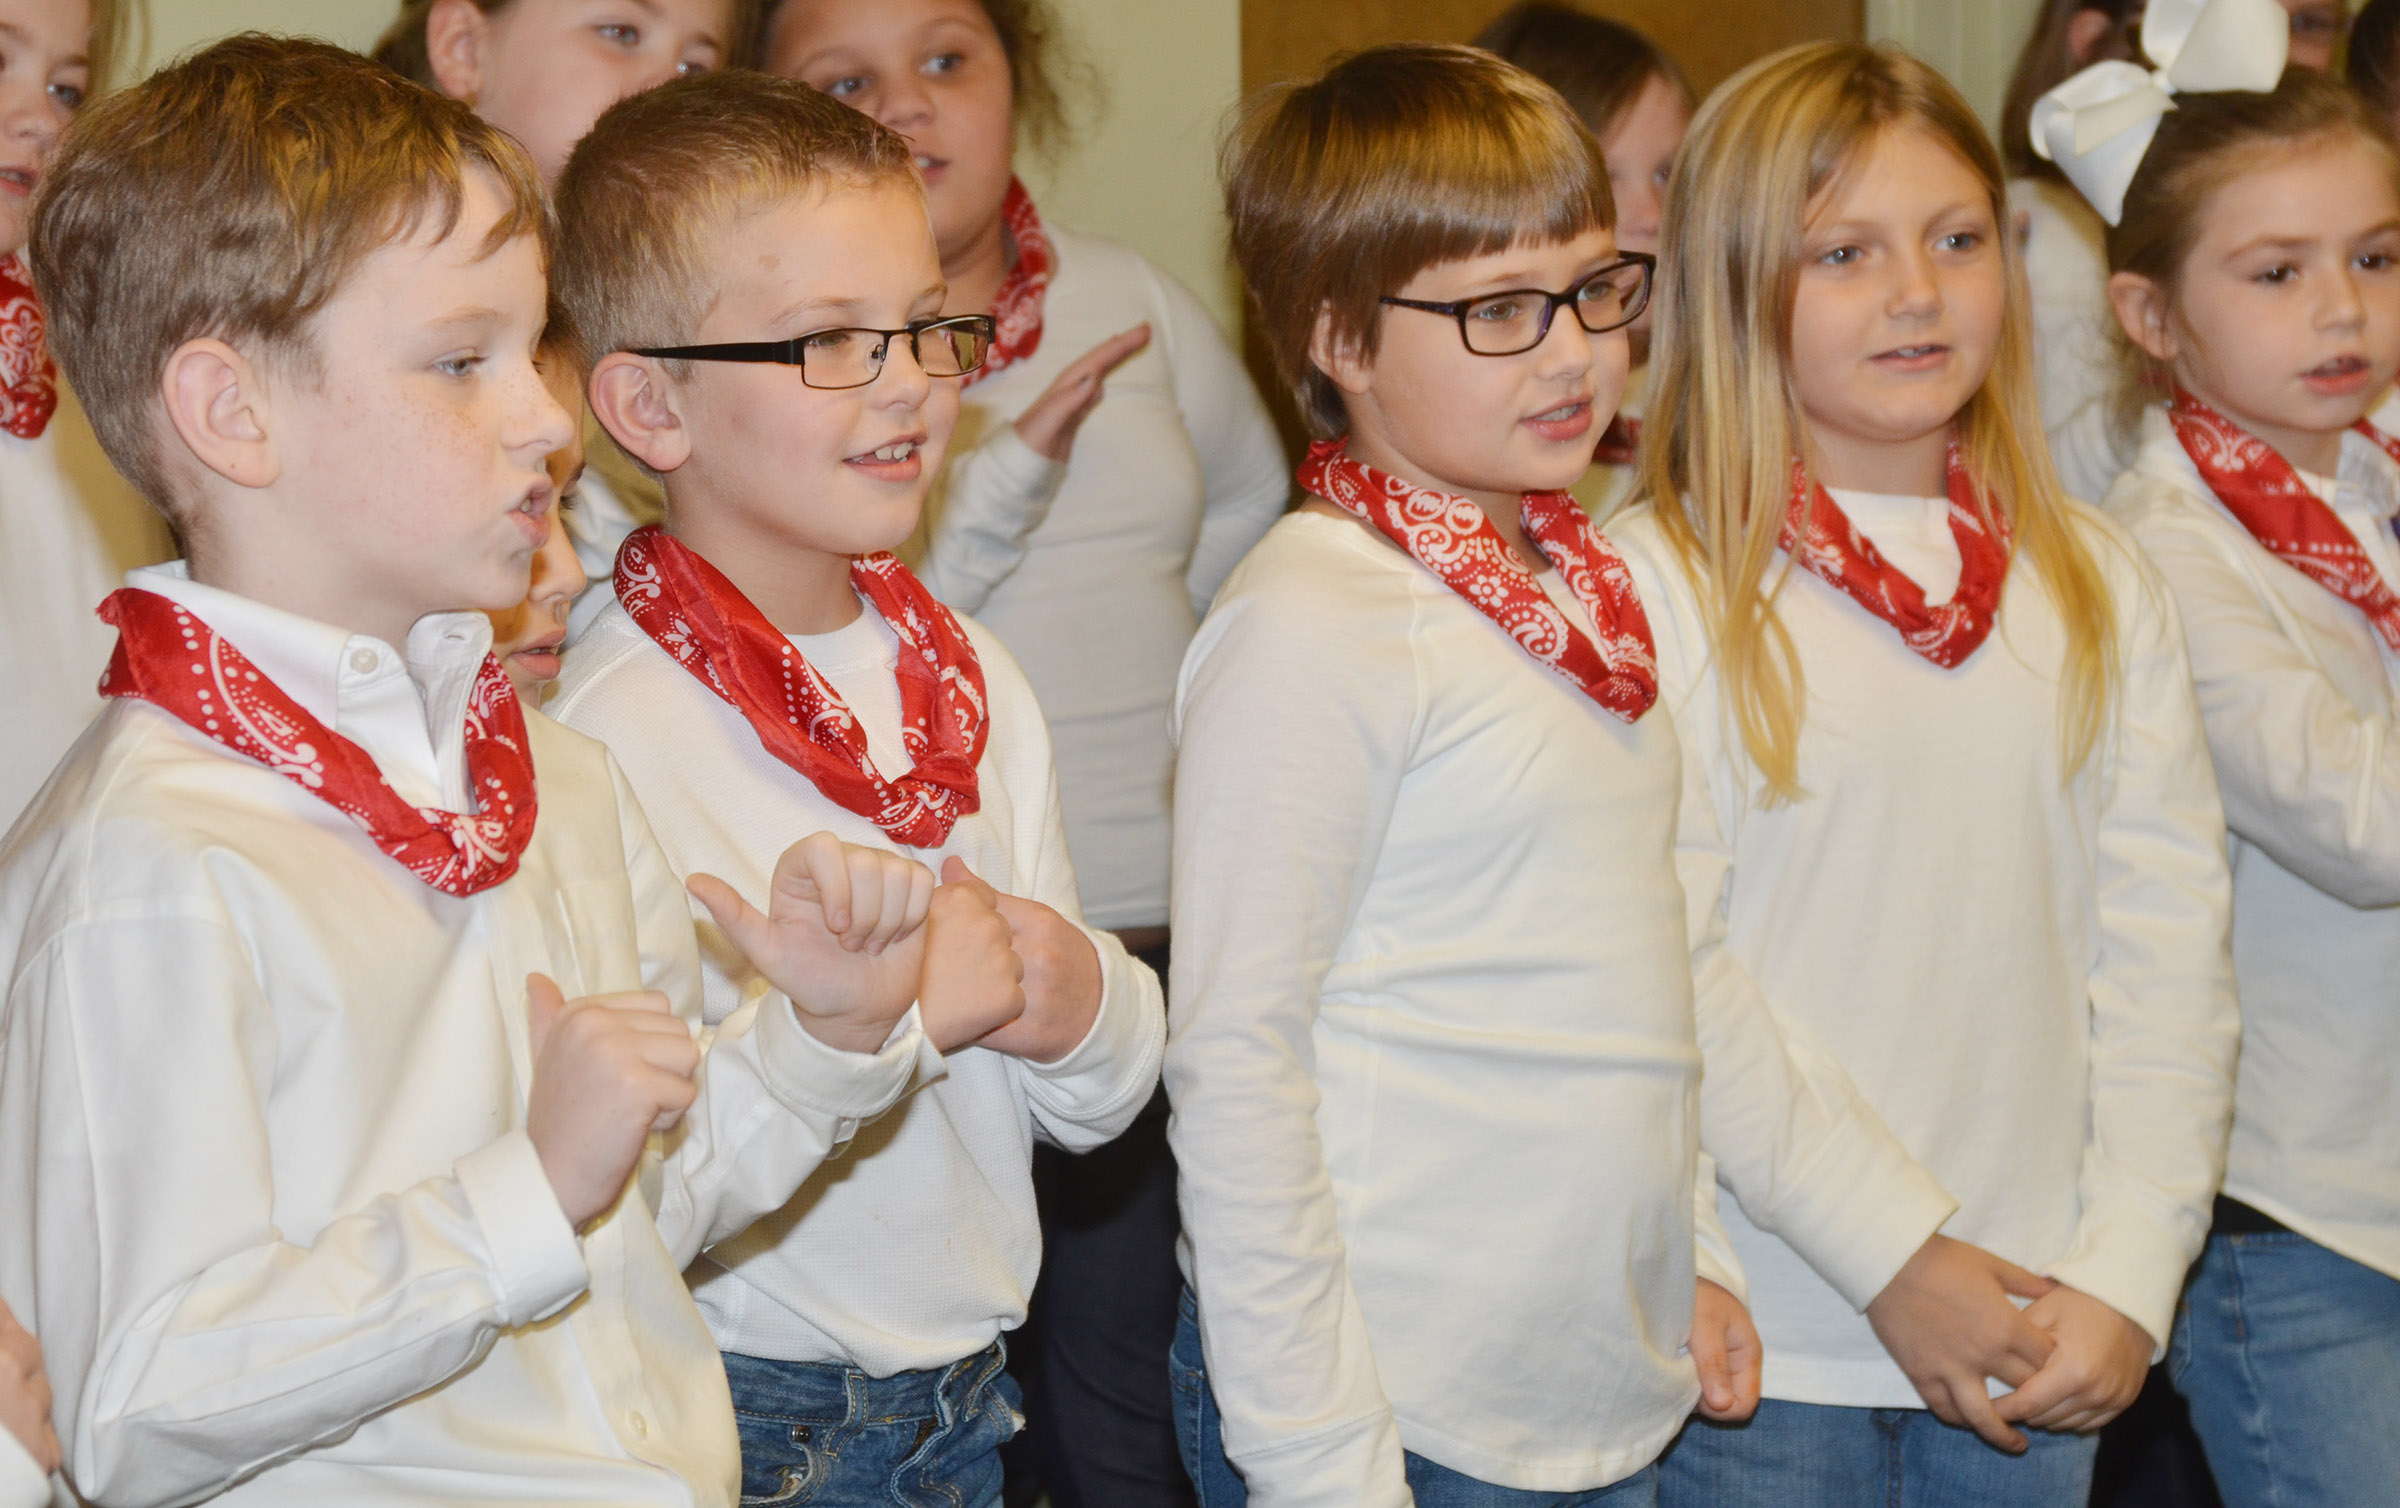 CES second-grade choir members, from left, Jayden Cox, Ethan Bailey, Addelyn Dooley, Asia Singleton and Lainey Price sing.